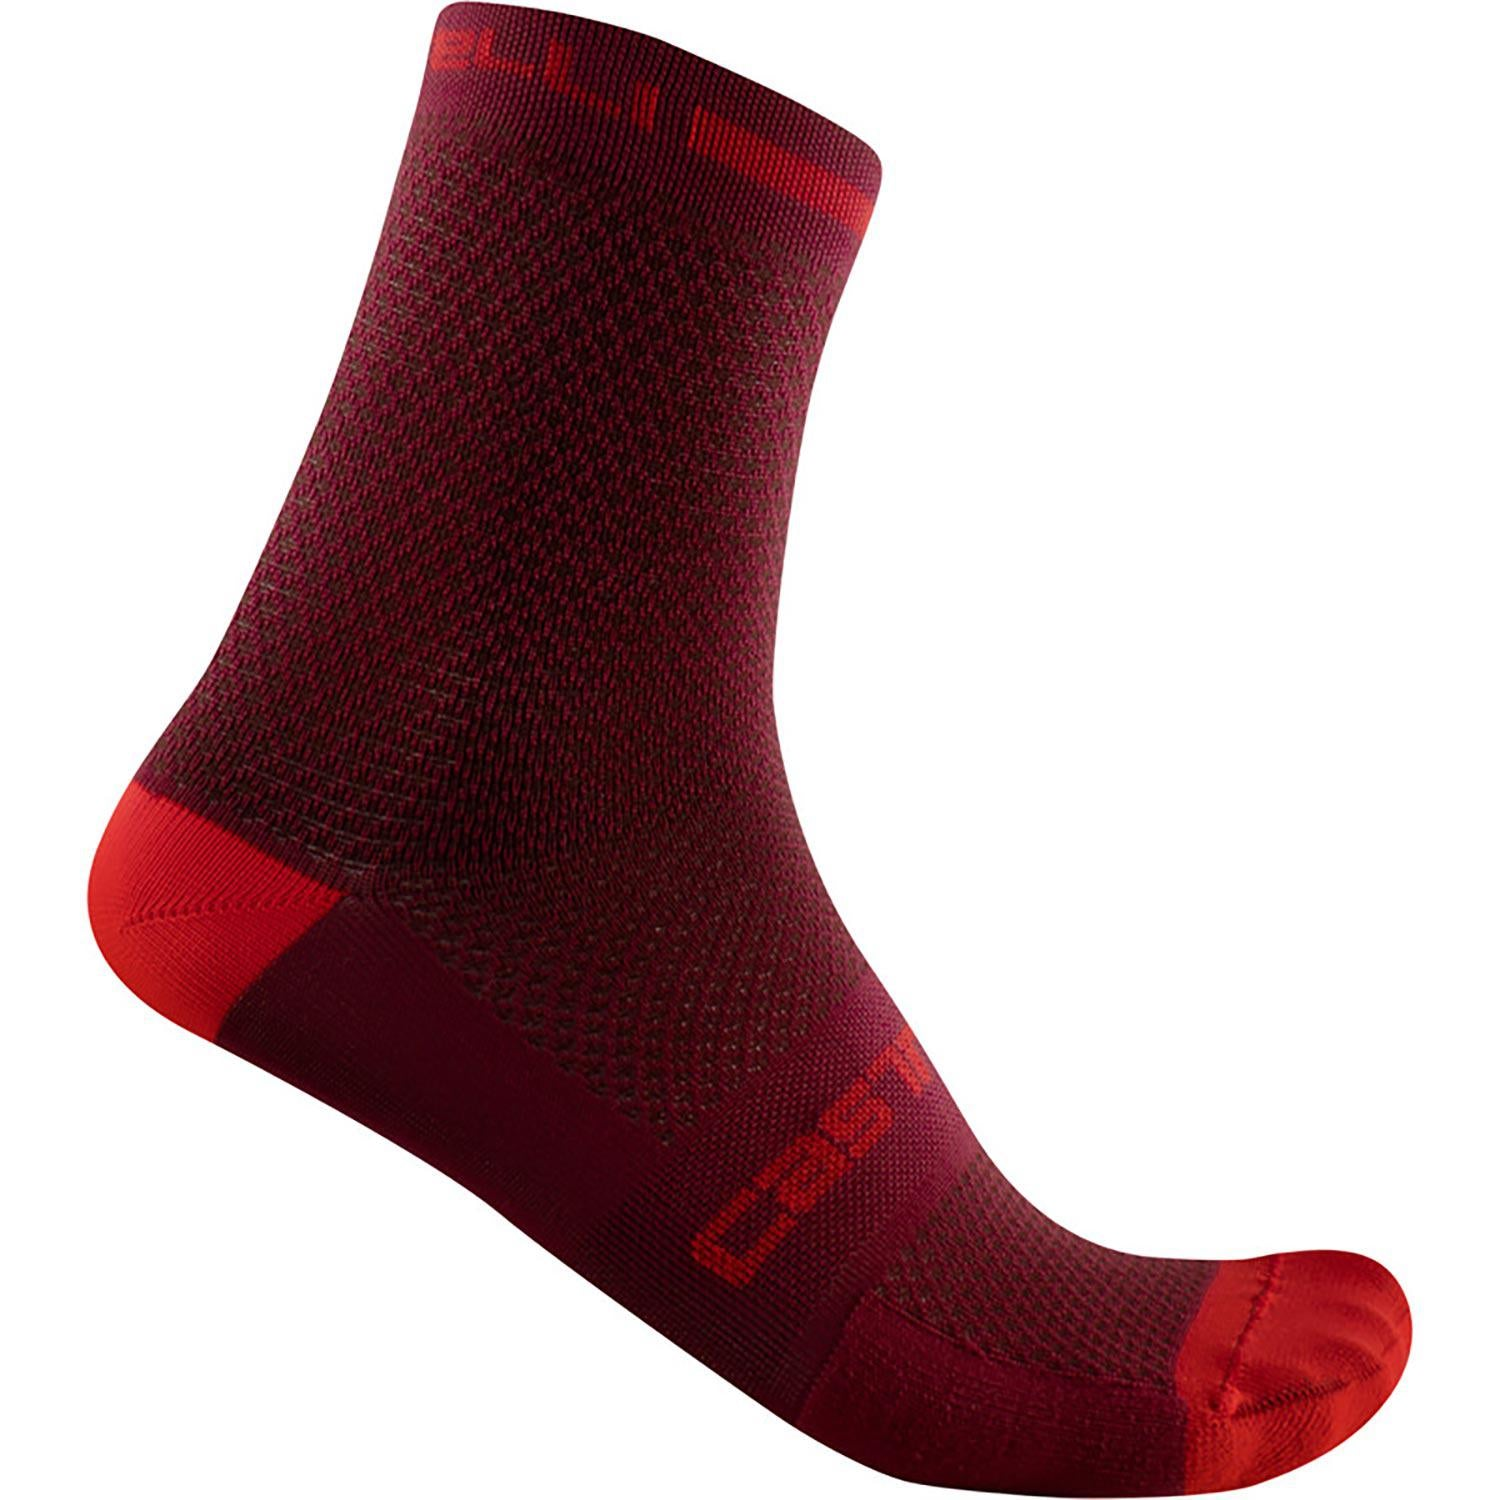 Castelli-Castelli Superleggera T 12 Socks-Bordeaux-S/M-CS2103042109-saddleback-elite-performance-cycling